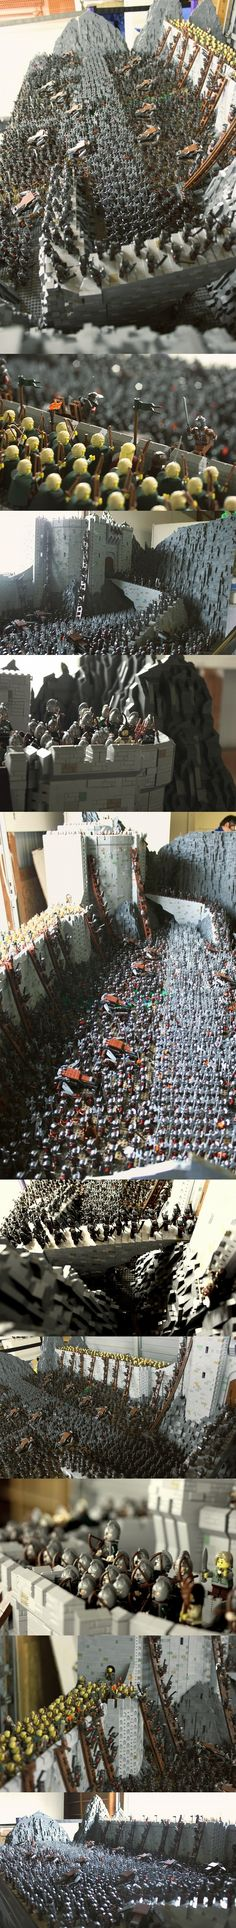 Lord of the Rings, Helm's Deep - About 150 000 bricks and total 1700 minifigures. It weight about 160 pounds and ping-pong table size (24 grey 48X48 base plate). #LEGO #LOTR